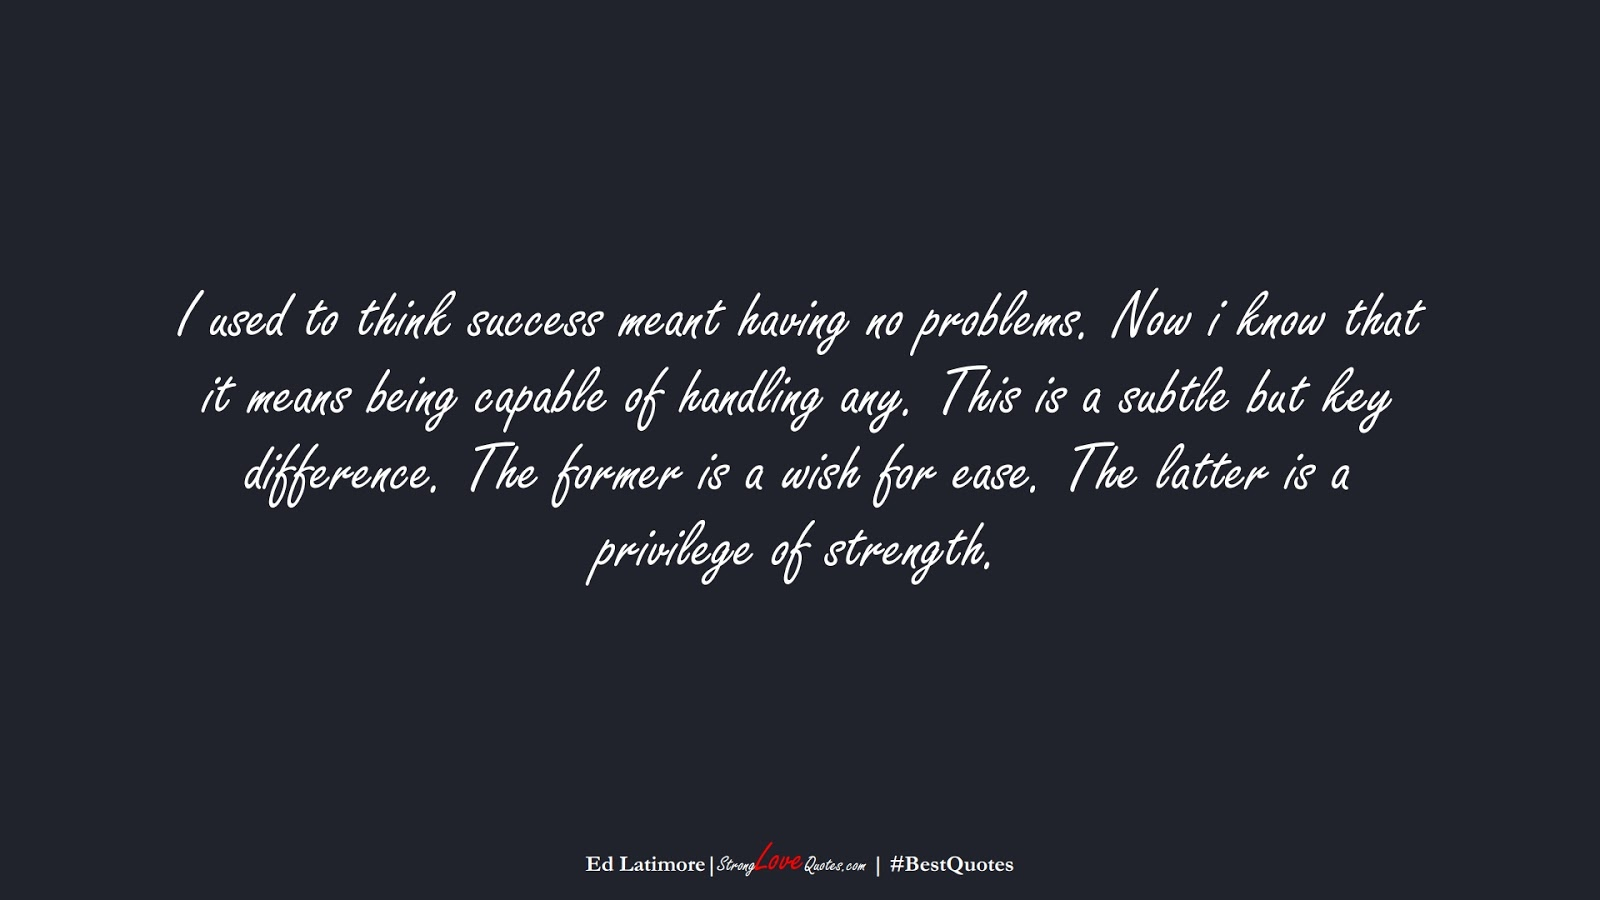 I used to think success meant having no problems. Now i know that it means being capable of handling any. This is a subtle but key difference. The former is a wish for ease. The latter is a privilege of strength. (Ed Latimore);  #BestQuotes